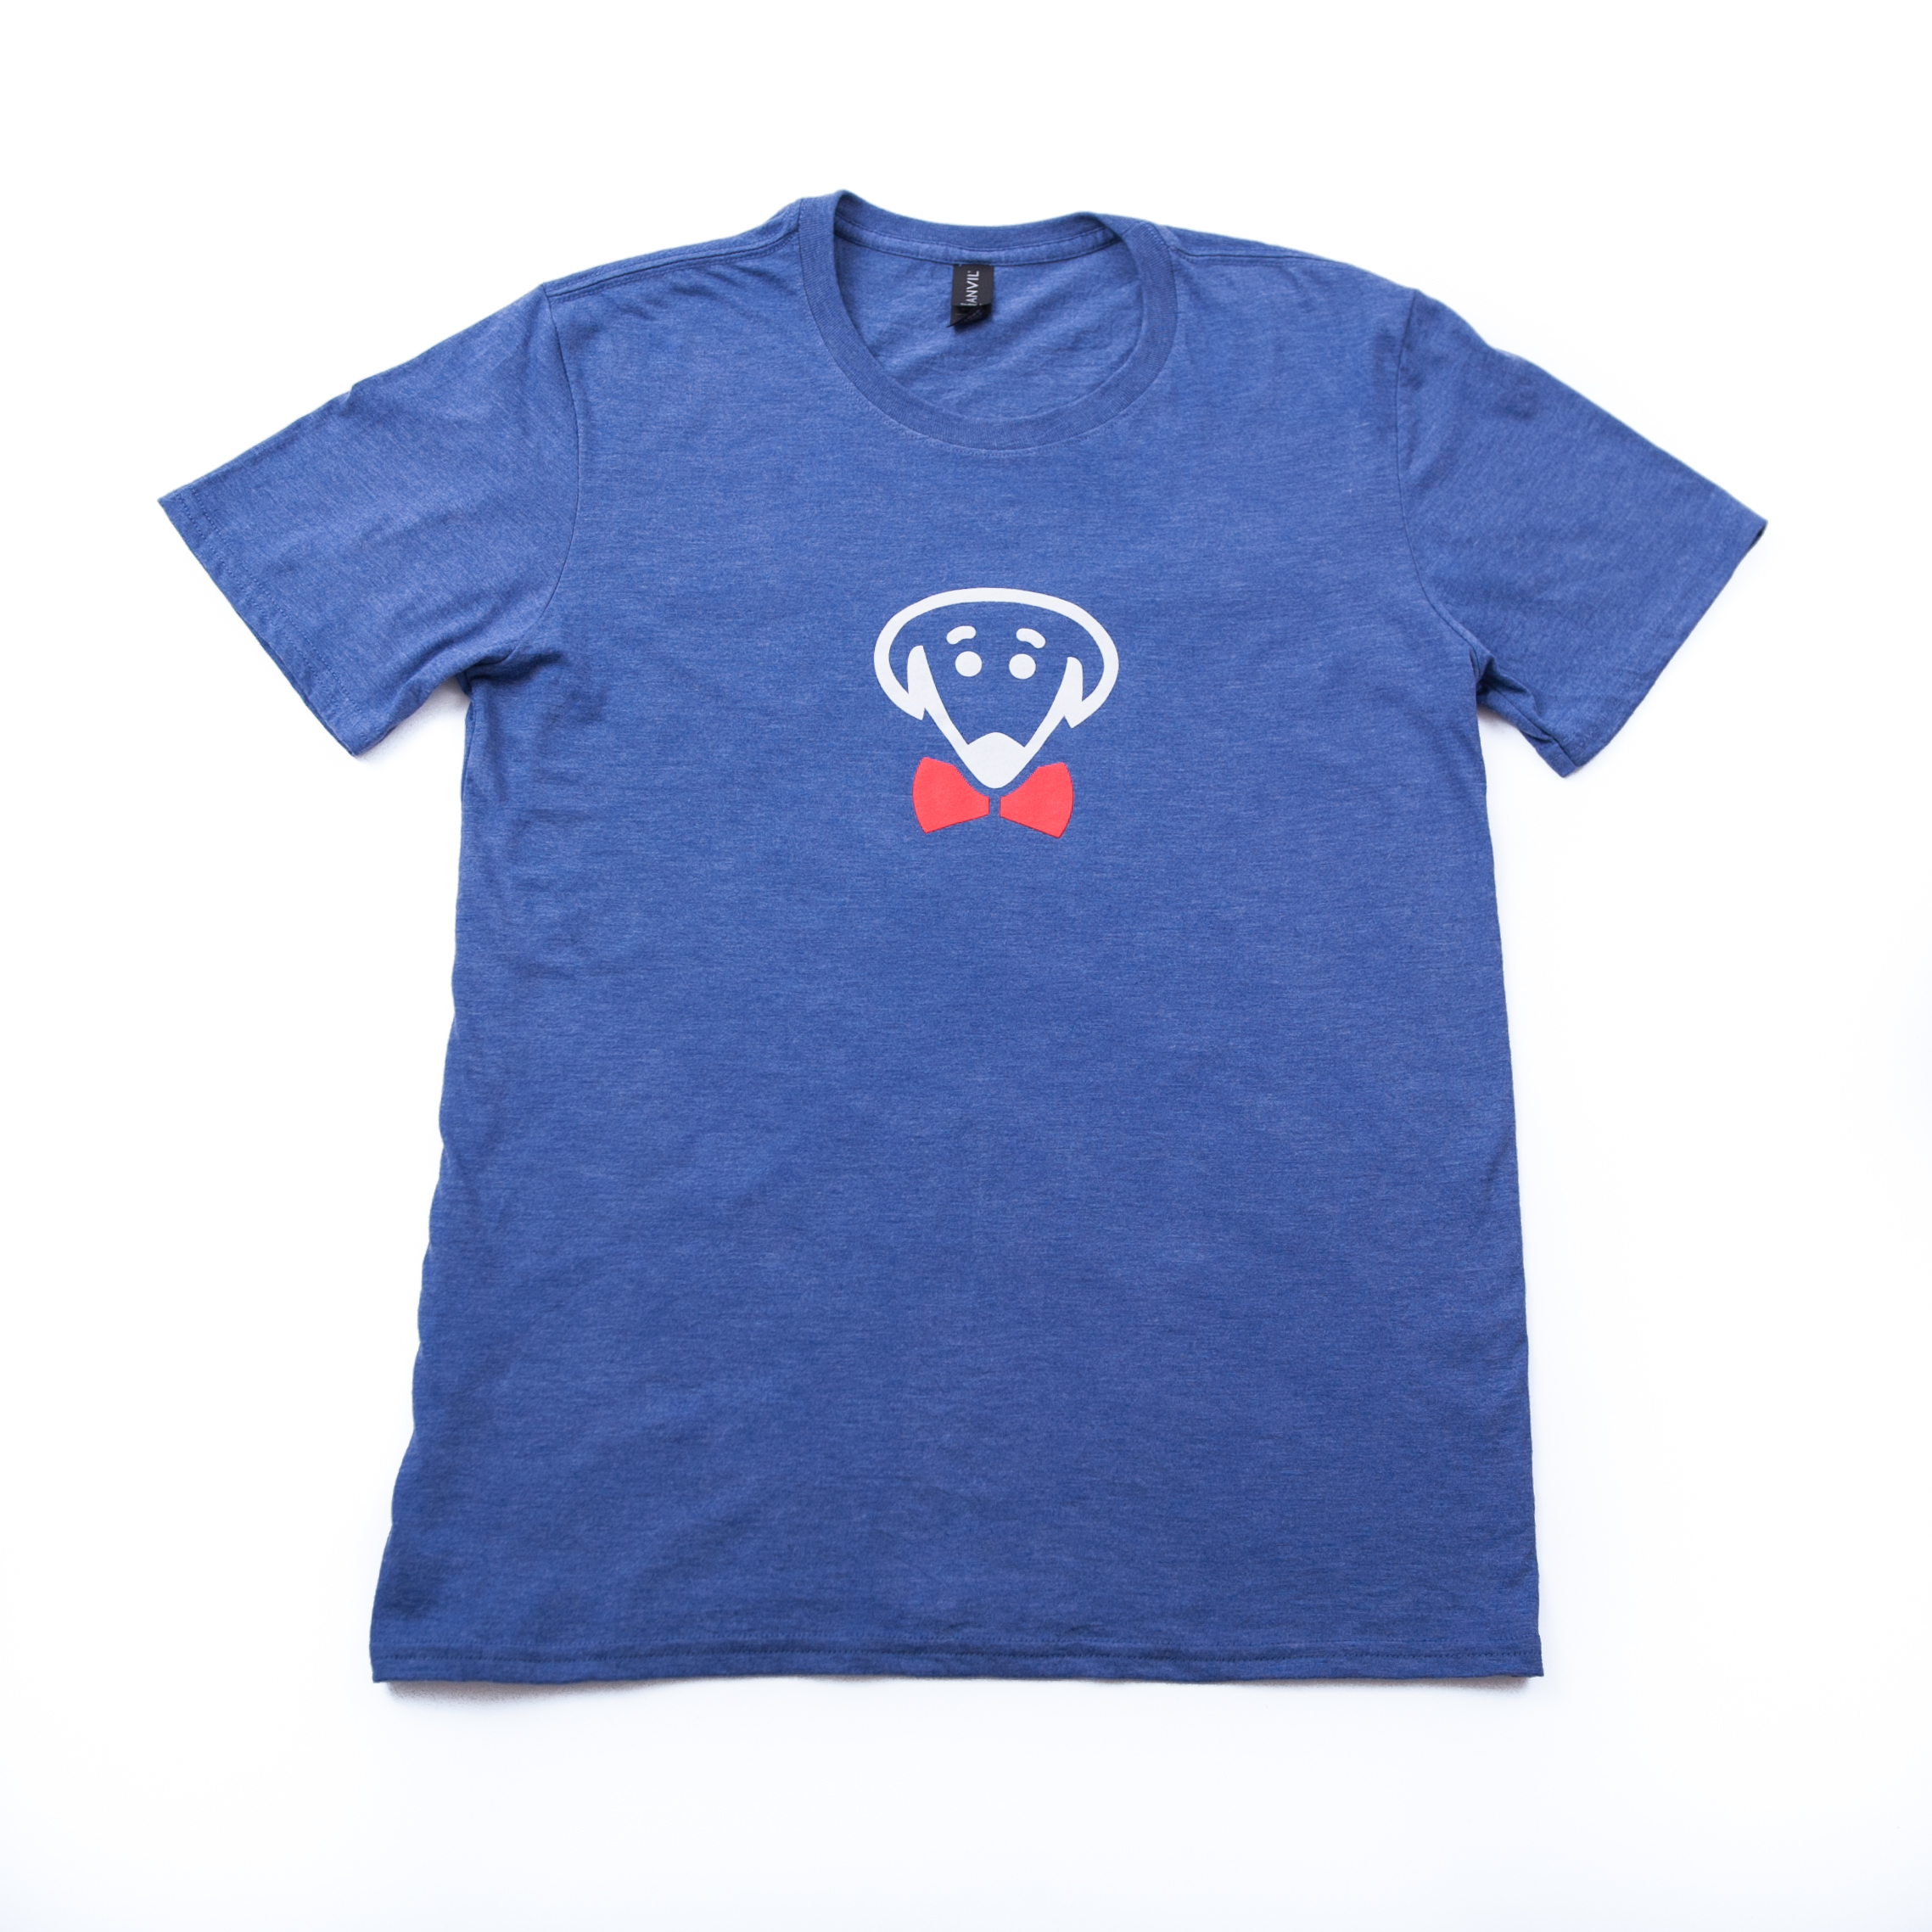 Bow Ties heather blue t-shirt